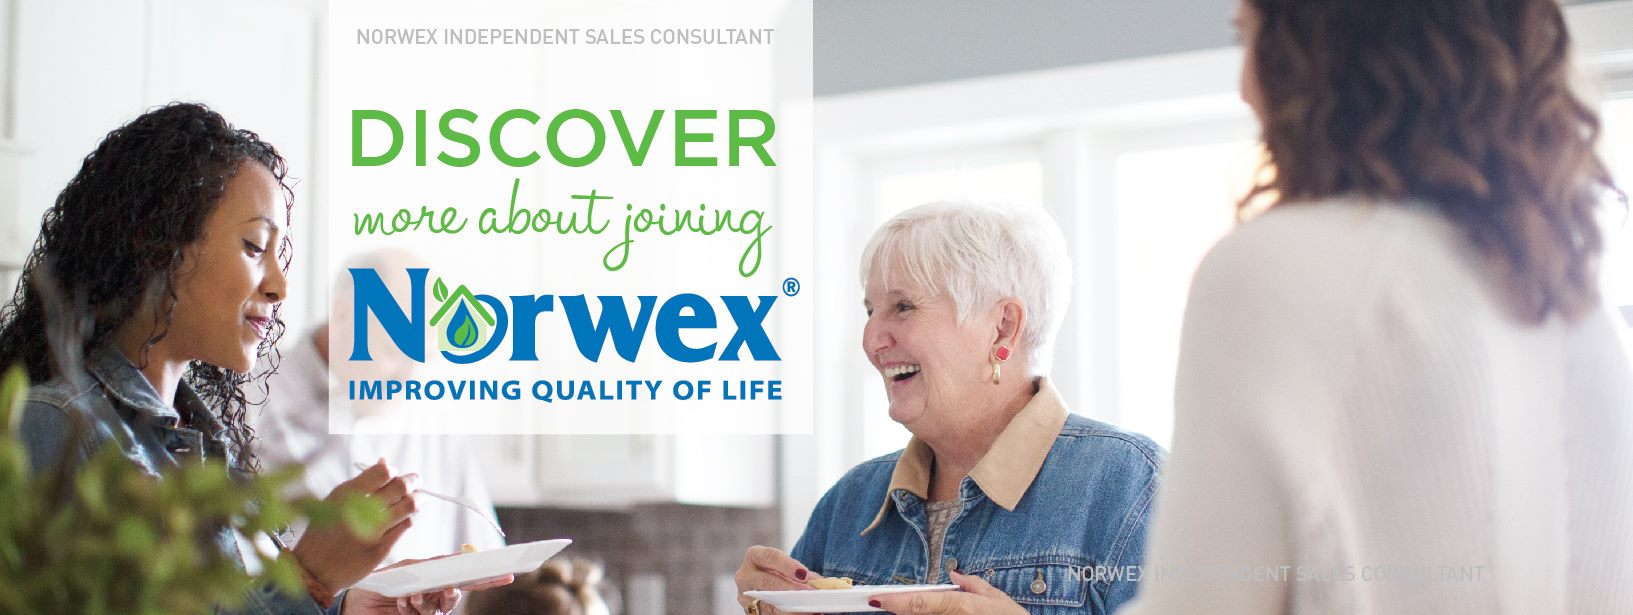 recruiting joining Norwex banner